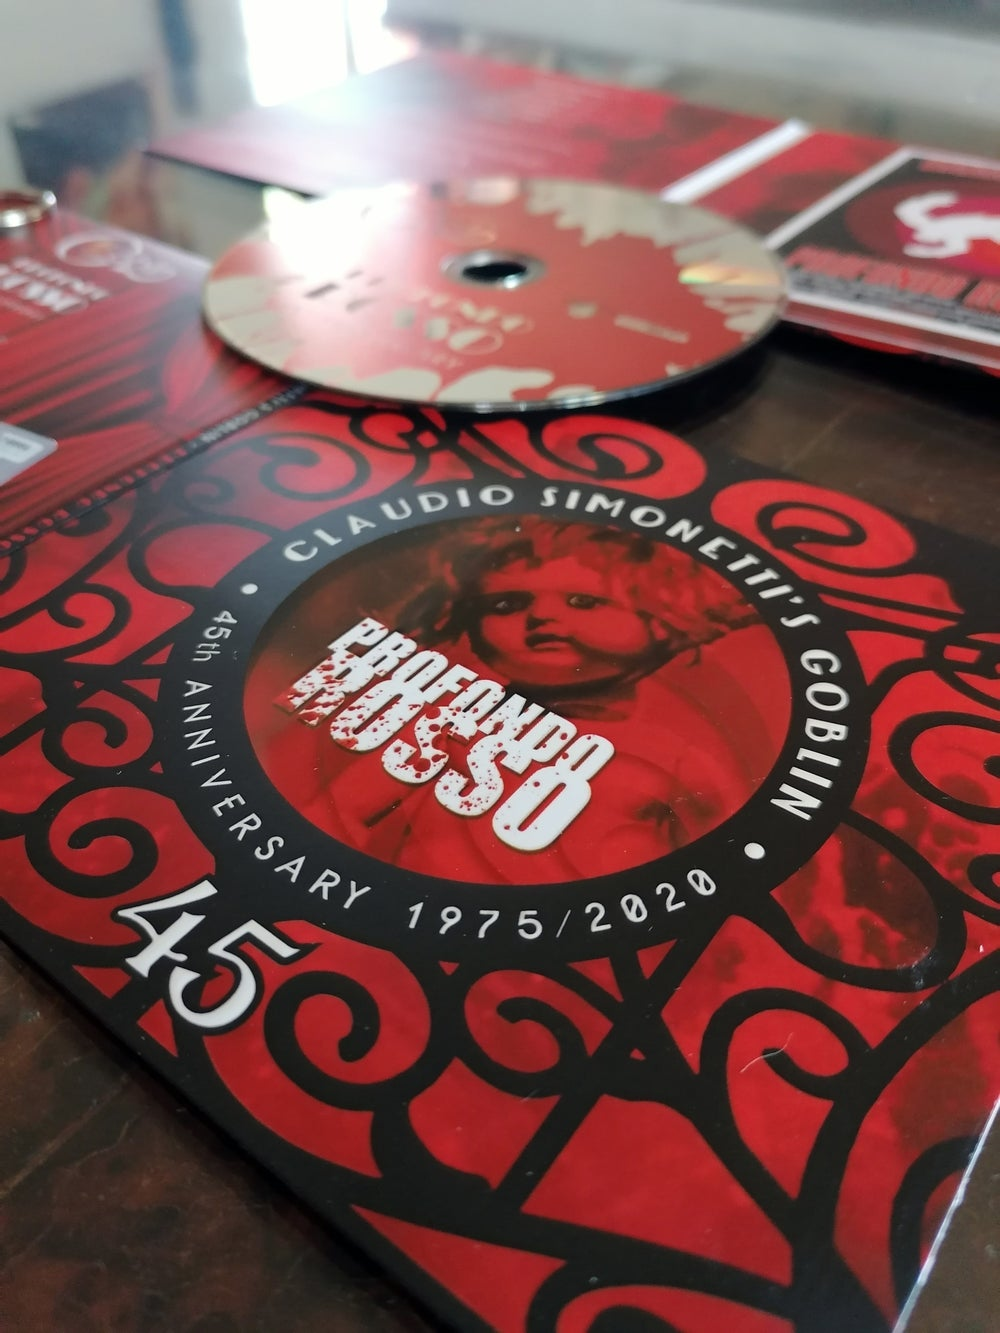 Profondo Rosso 45° Anniversary Limited CD + Exclusive Goblin Keychain